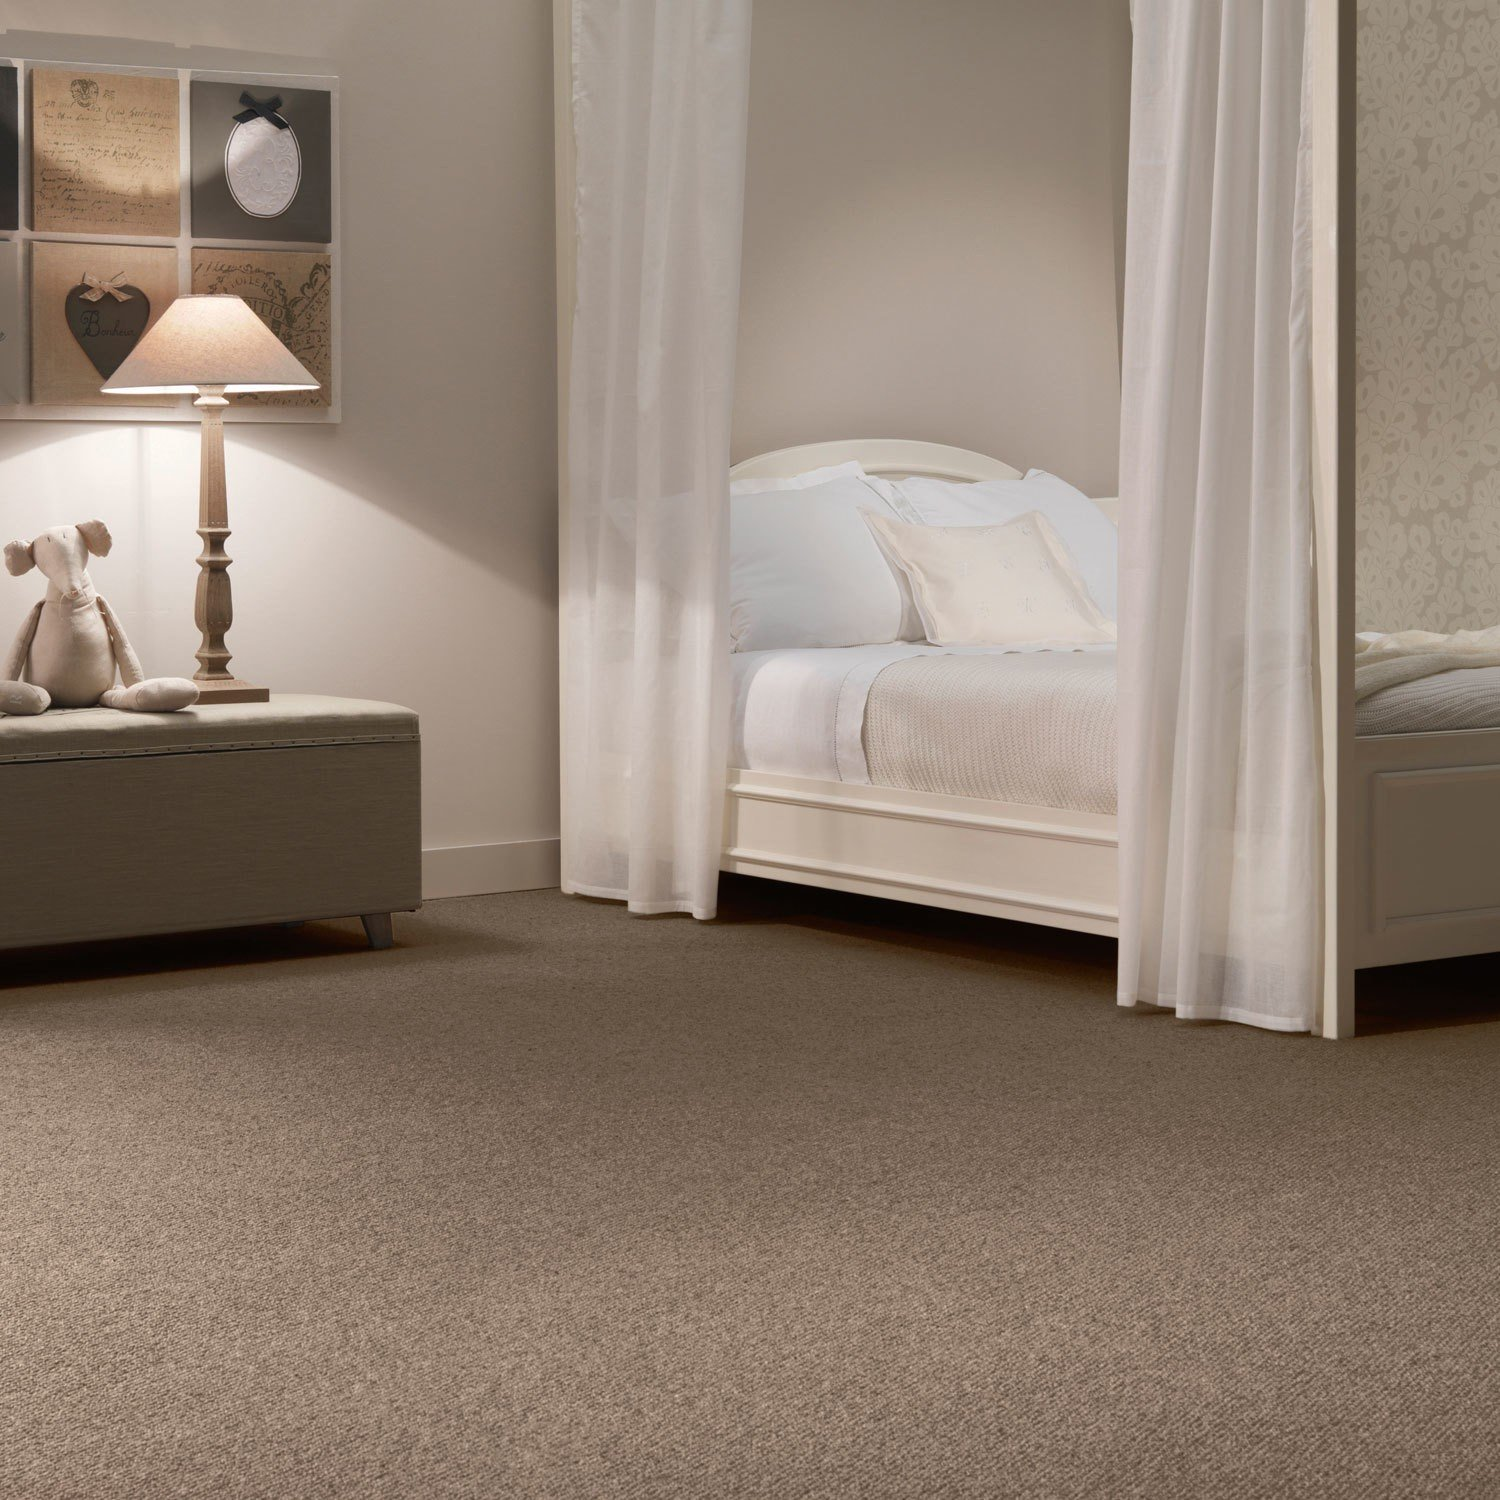 carpet and flooring ideas commercial carpet bedroom wool cheap flooring ideas for bedrooms in BQWFGKP